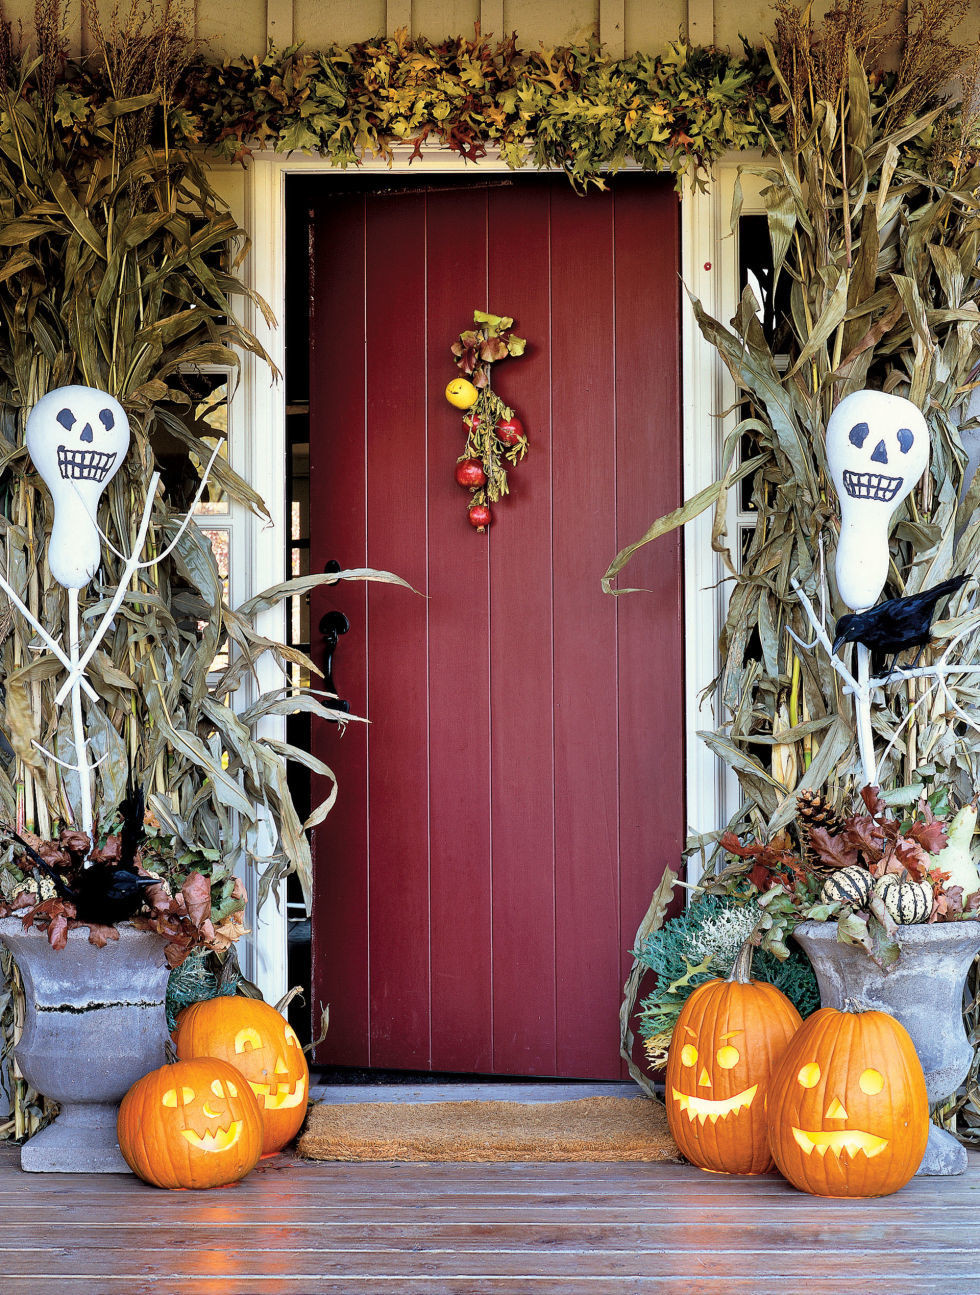 Diy Halloween Porch Decorations  25 Elegant Halloween Decorations Ideas MagMent